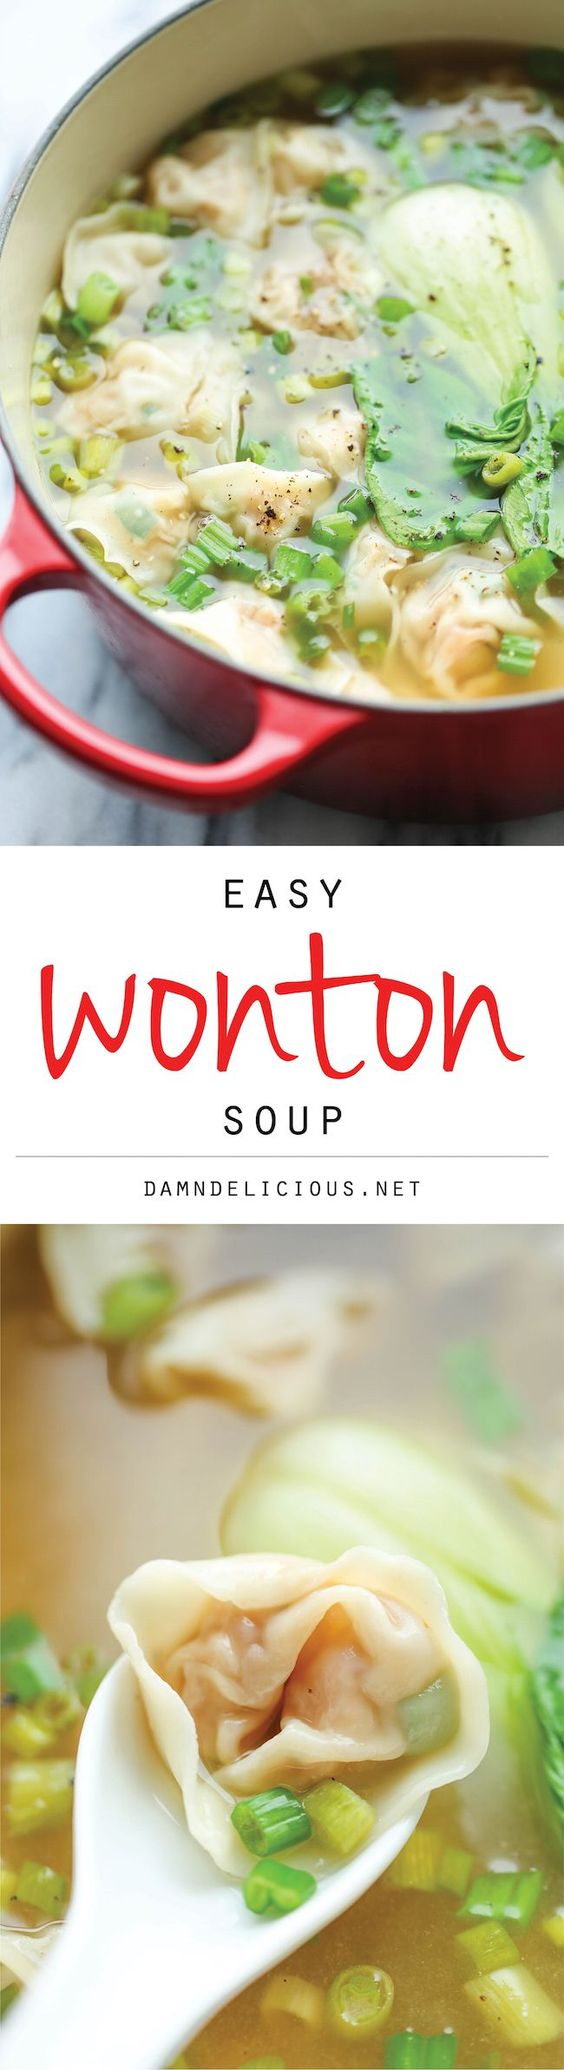 Wonton Soup – A super easy, light and comforting wonton soup that you can make right at home – and it tastes 1000x better than ordering out!